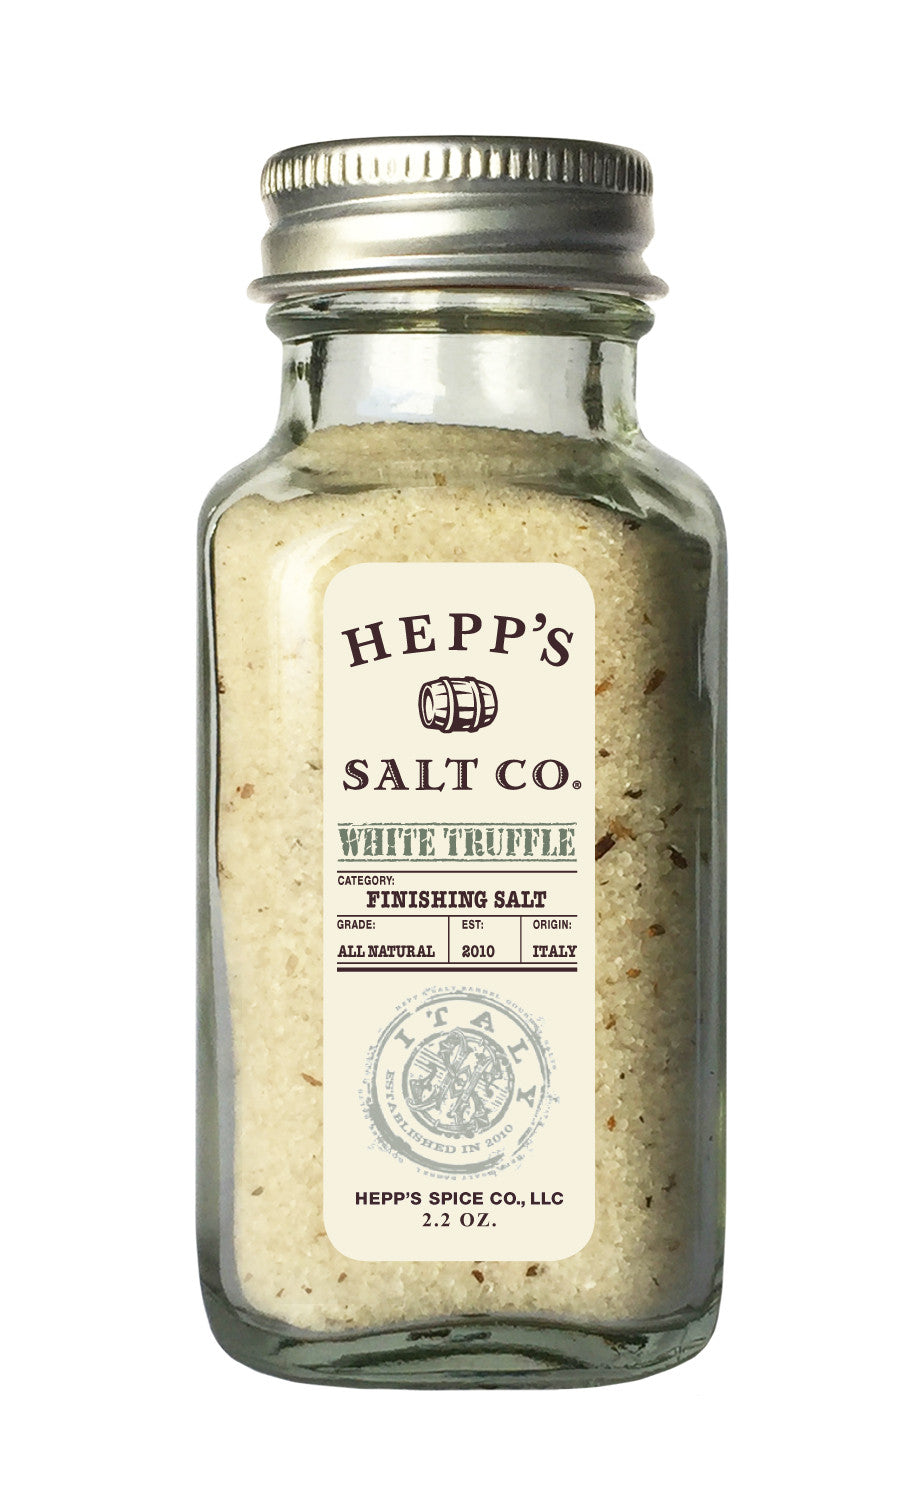 White Truffle Sea Salt - HEPPS SALT CO.